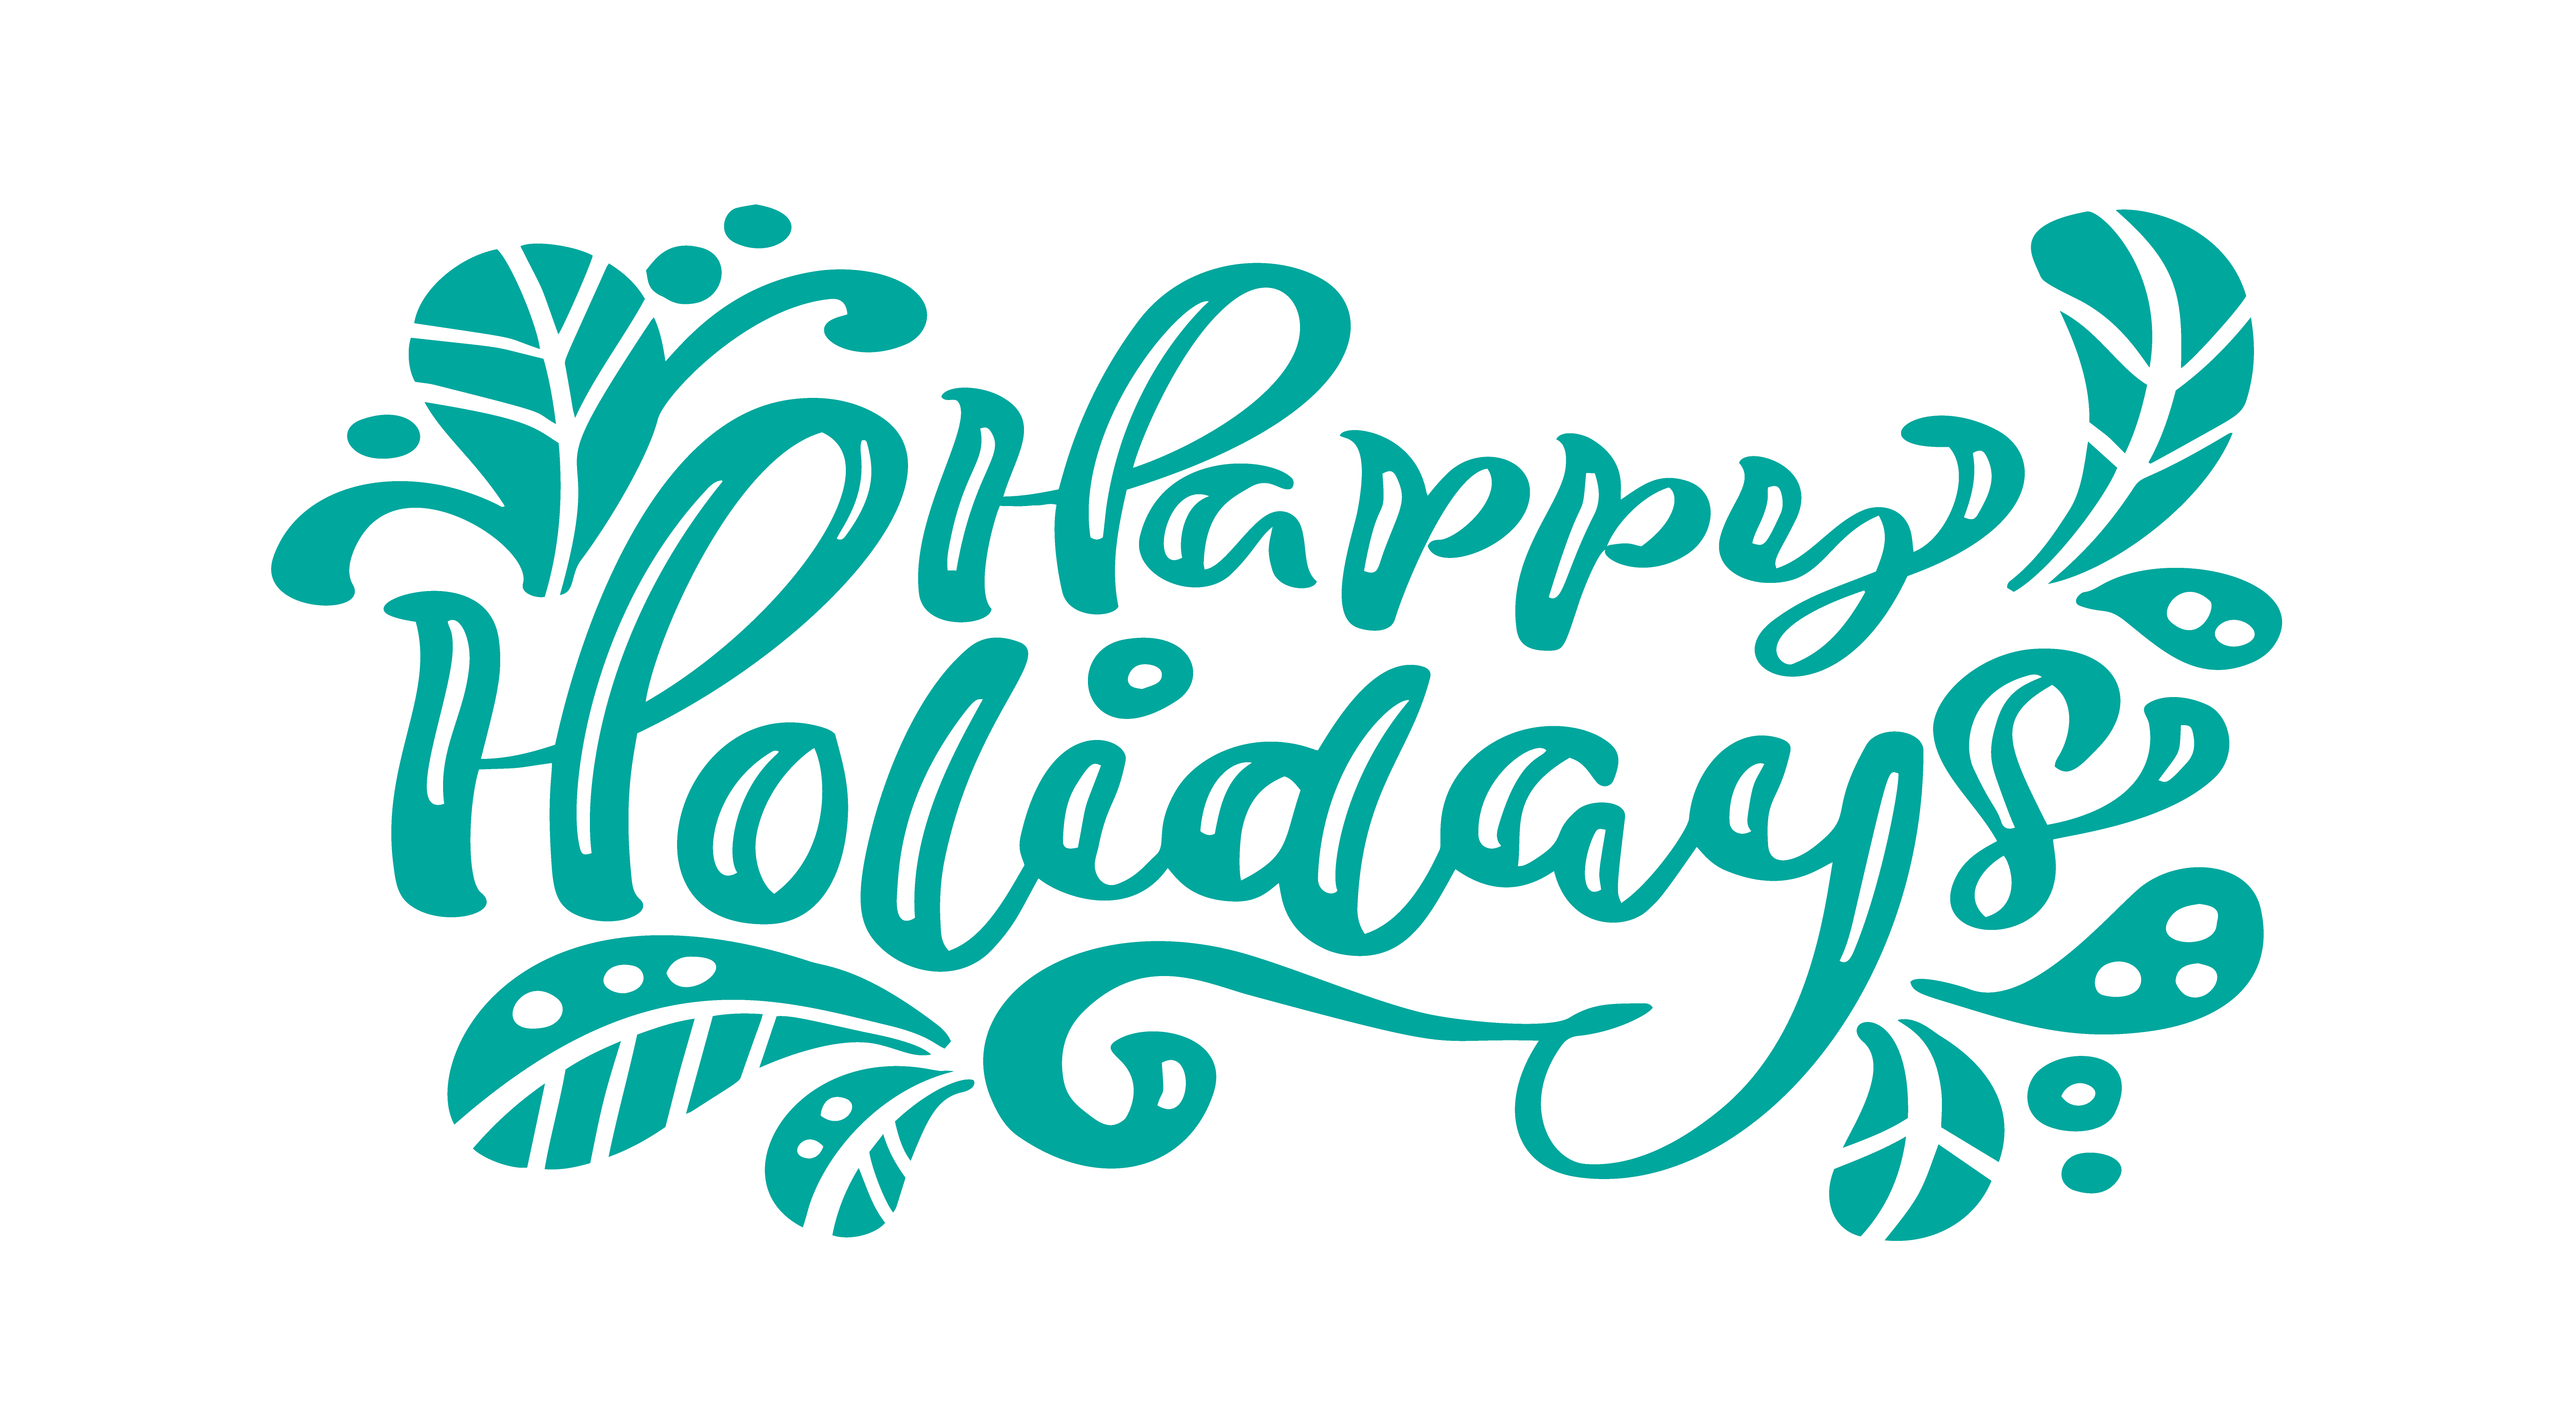 happy holidays turquoise calligraphy lettering vector text